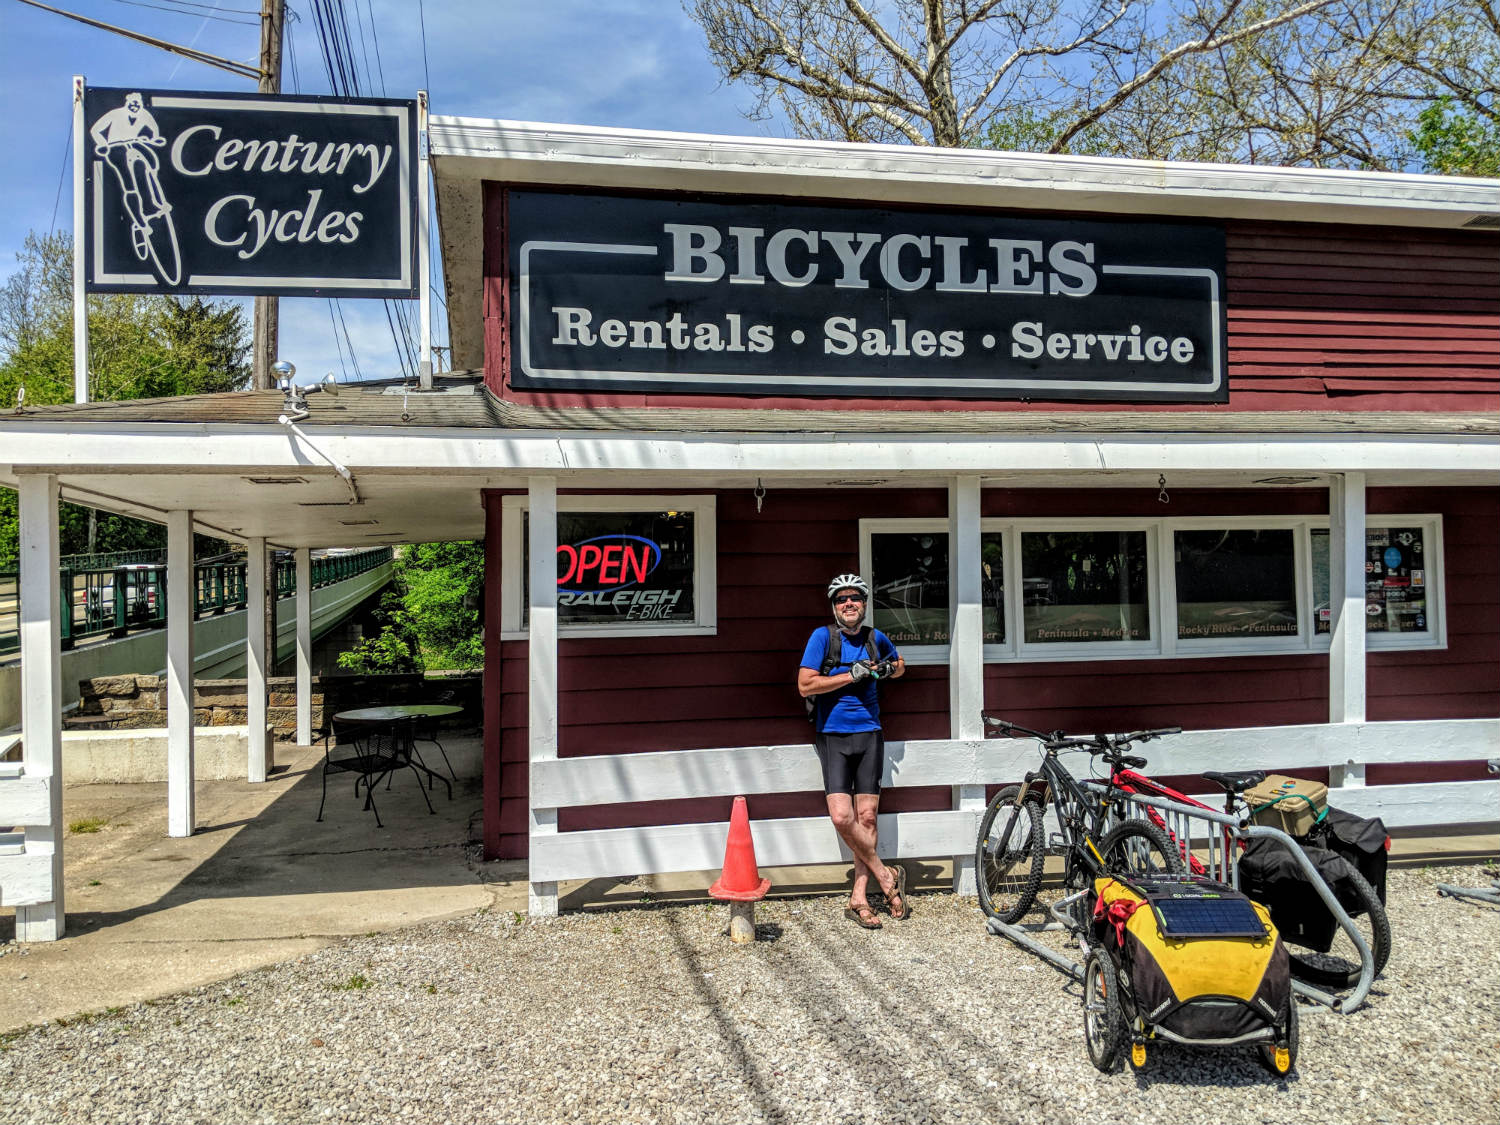 century cycles in the cuyahoga valley